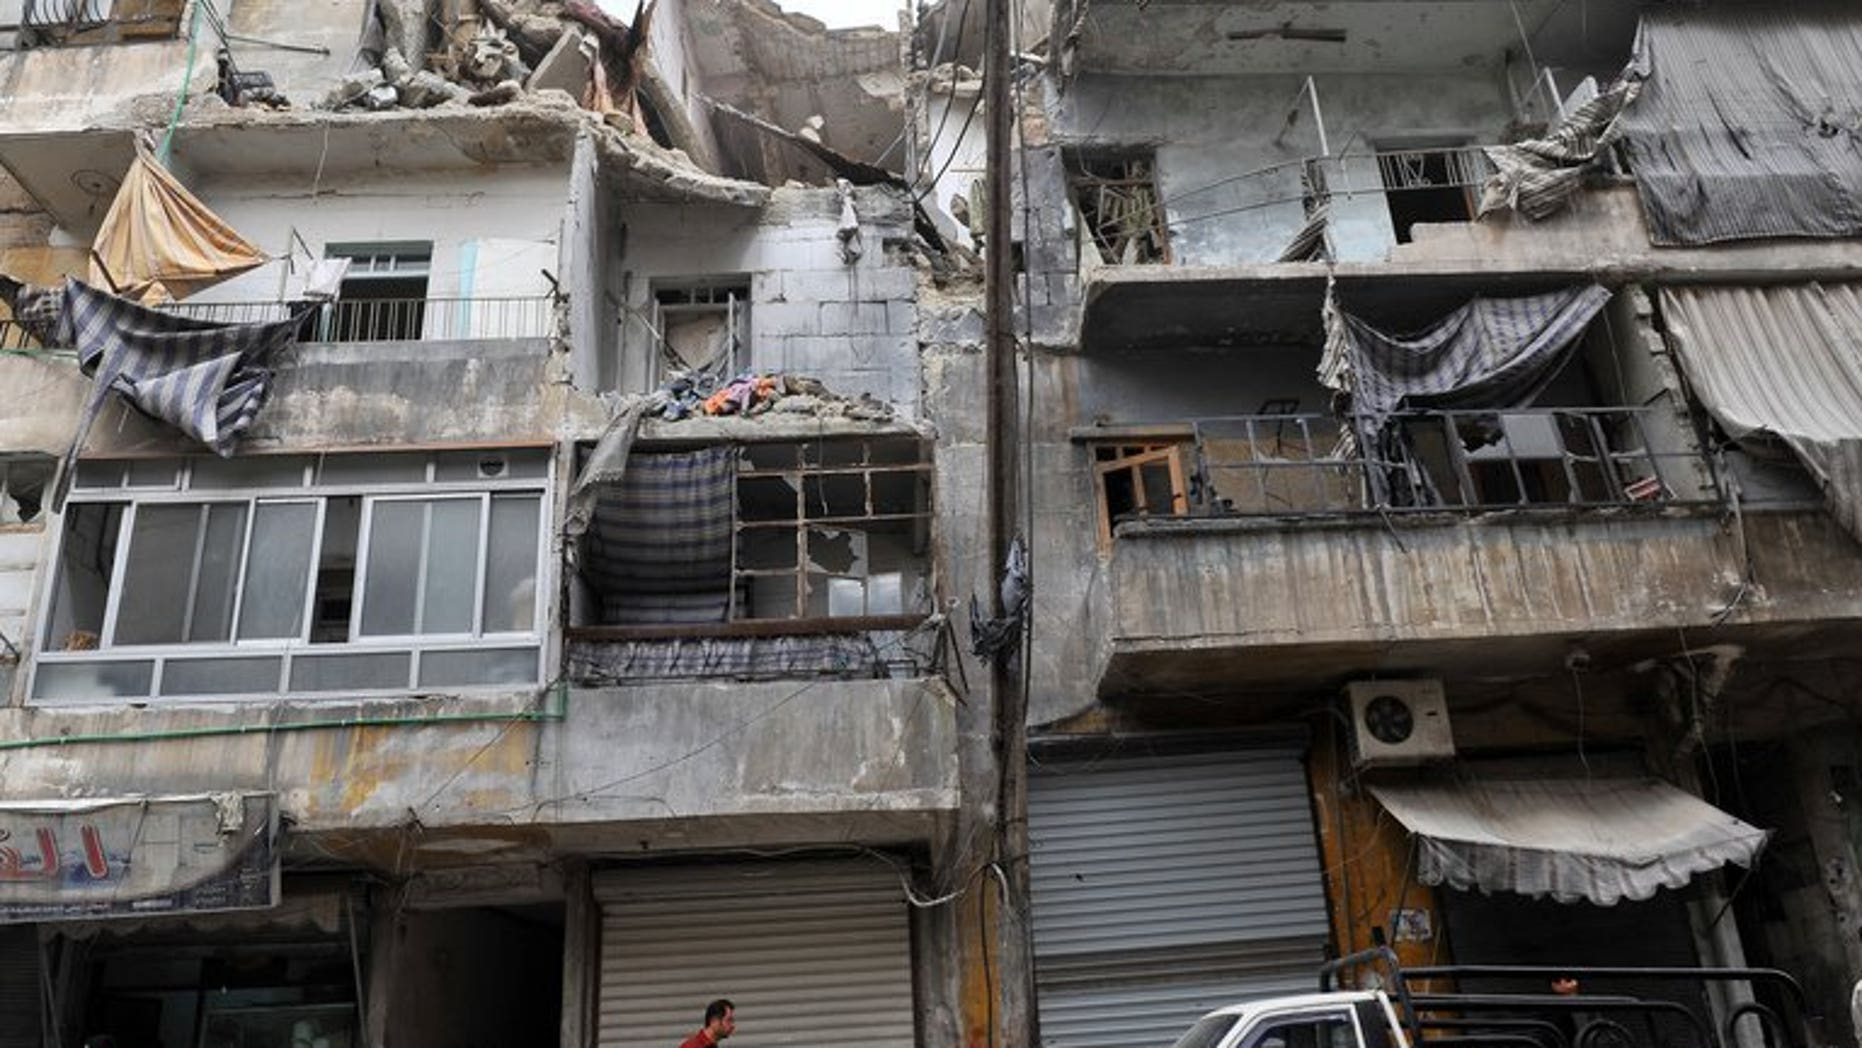 Syrians walk past a partially destroyed building in the northern city of Aleppo on March 22, 2013. At least 29 people, including 19 children, died in a missile strike by regime forces on the northern Syrian city of Aleppo, a watchdog said Saturday, revising an earlier toll.